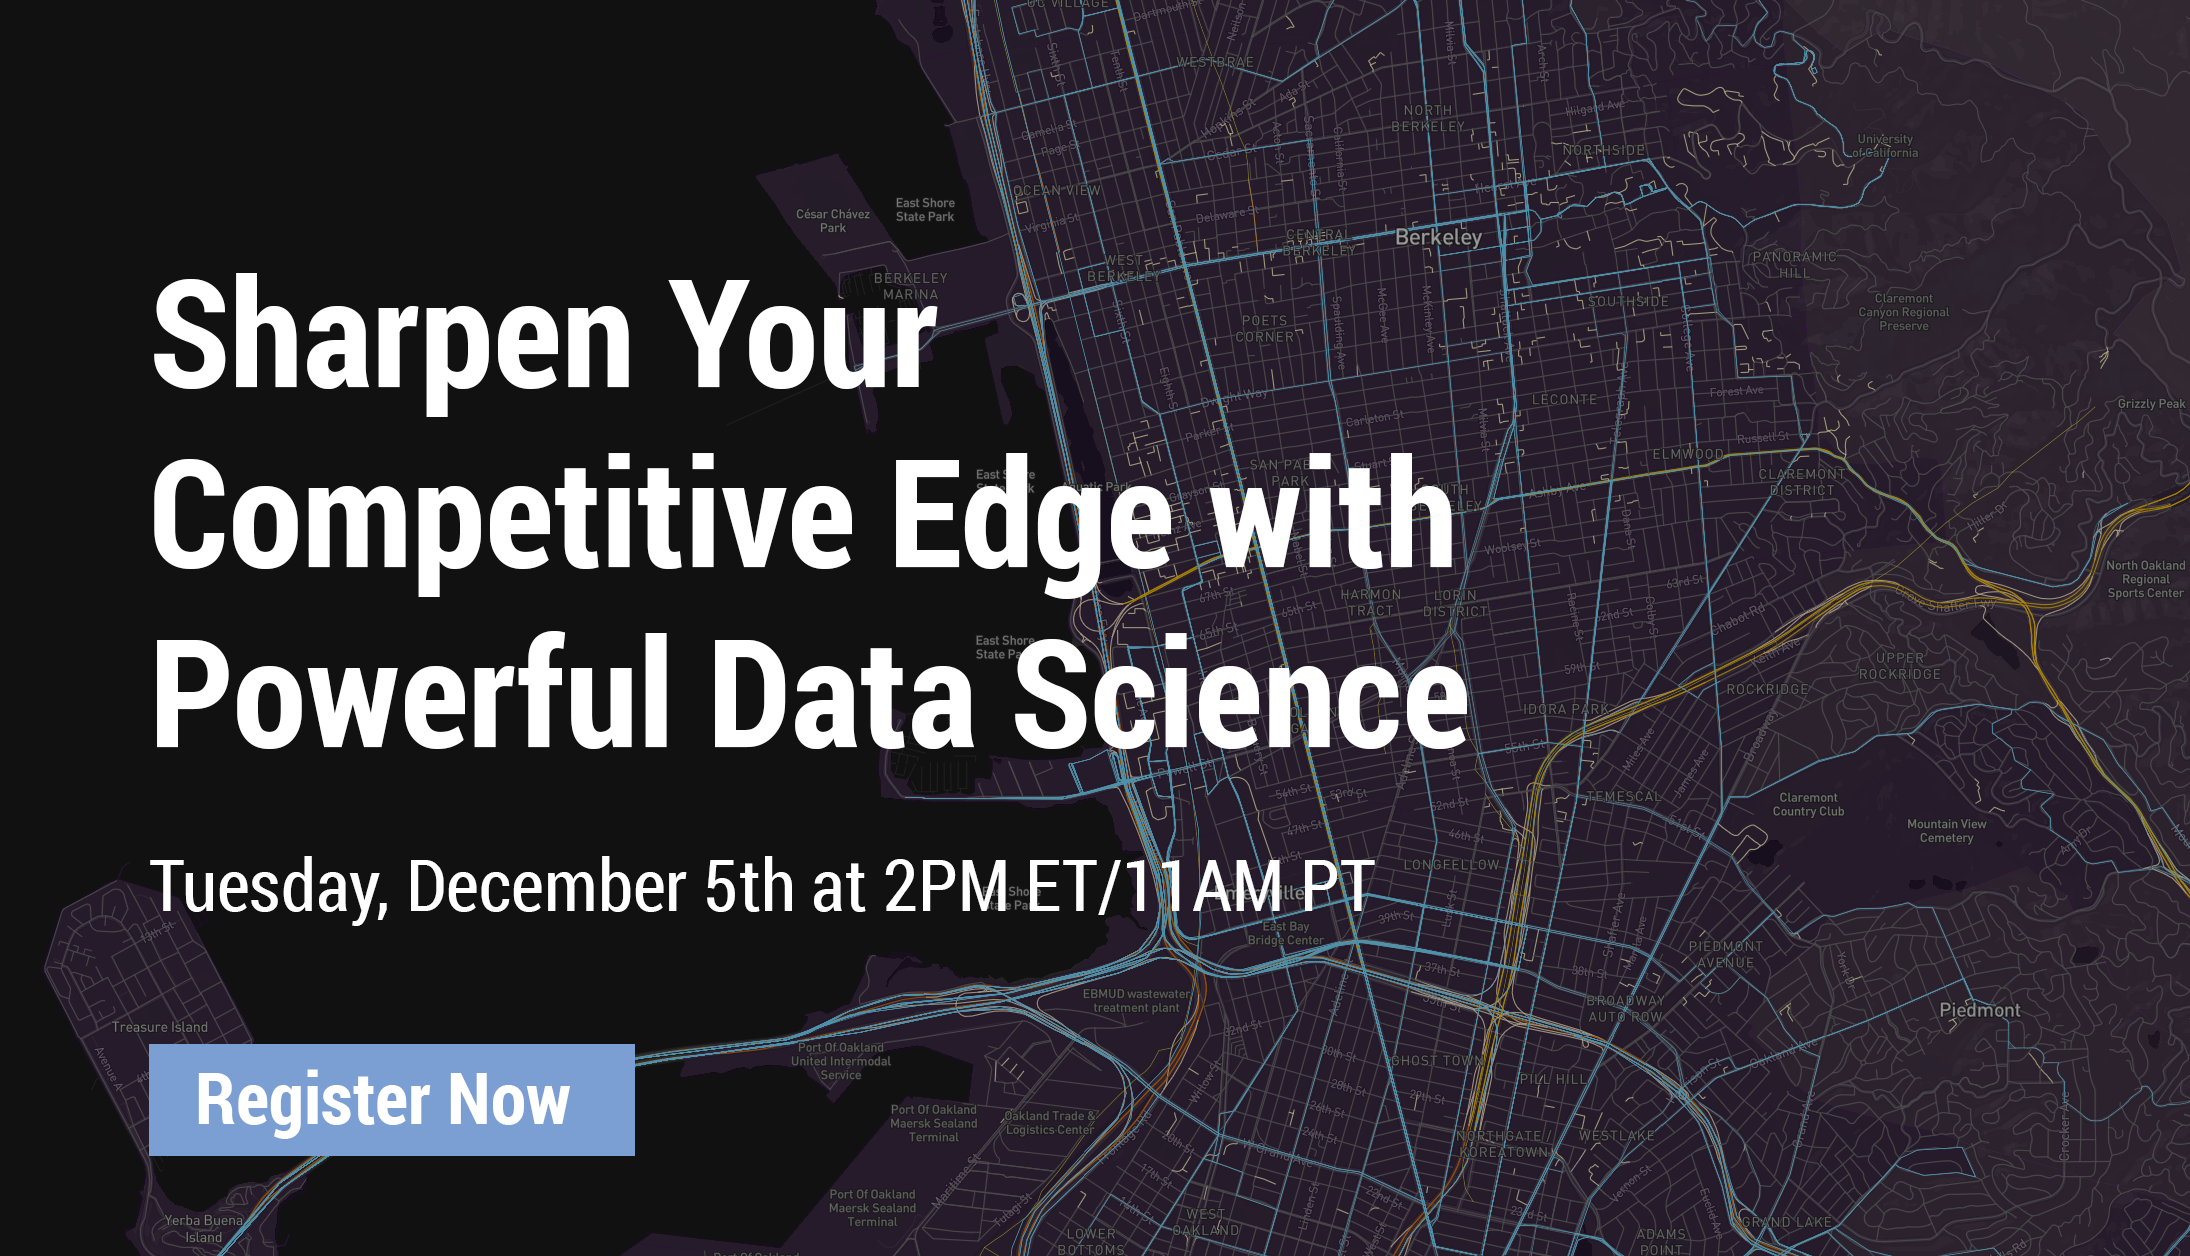 UrbanFootprint Webinar | Sharpen Your Competitive Edge with Powerful Data Science